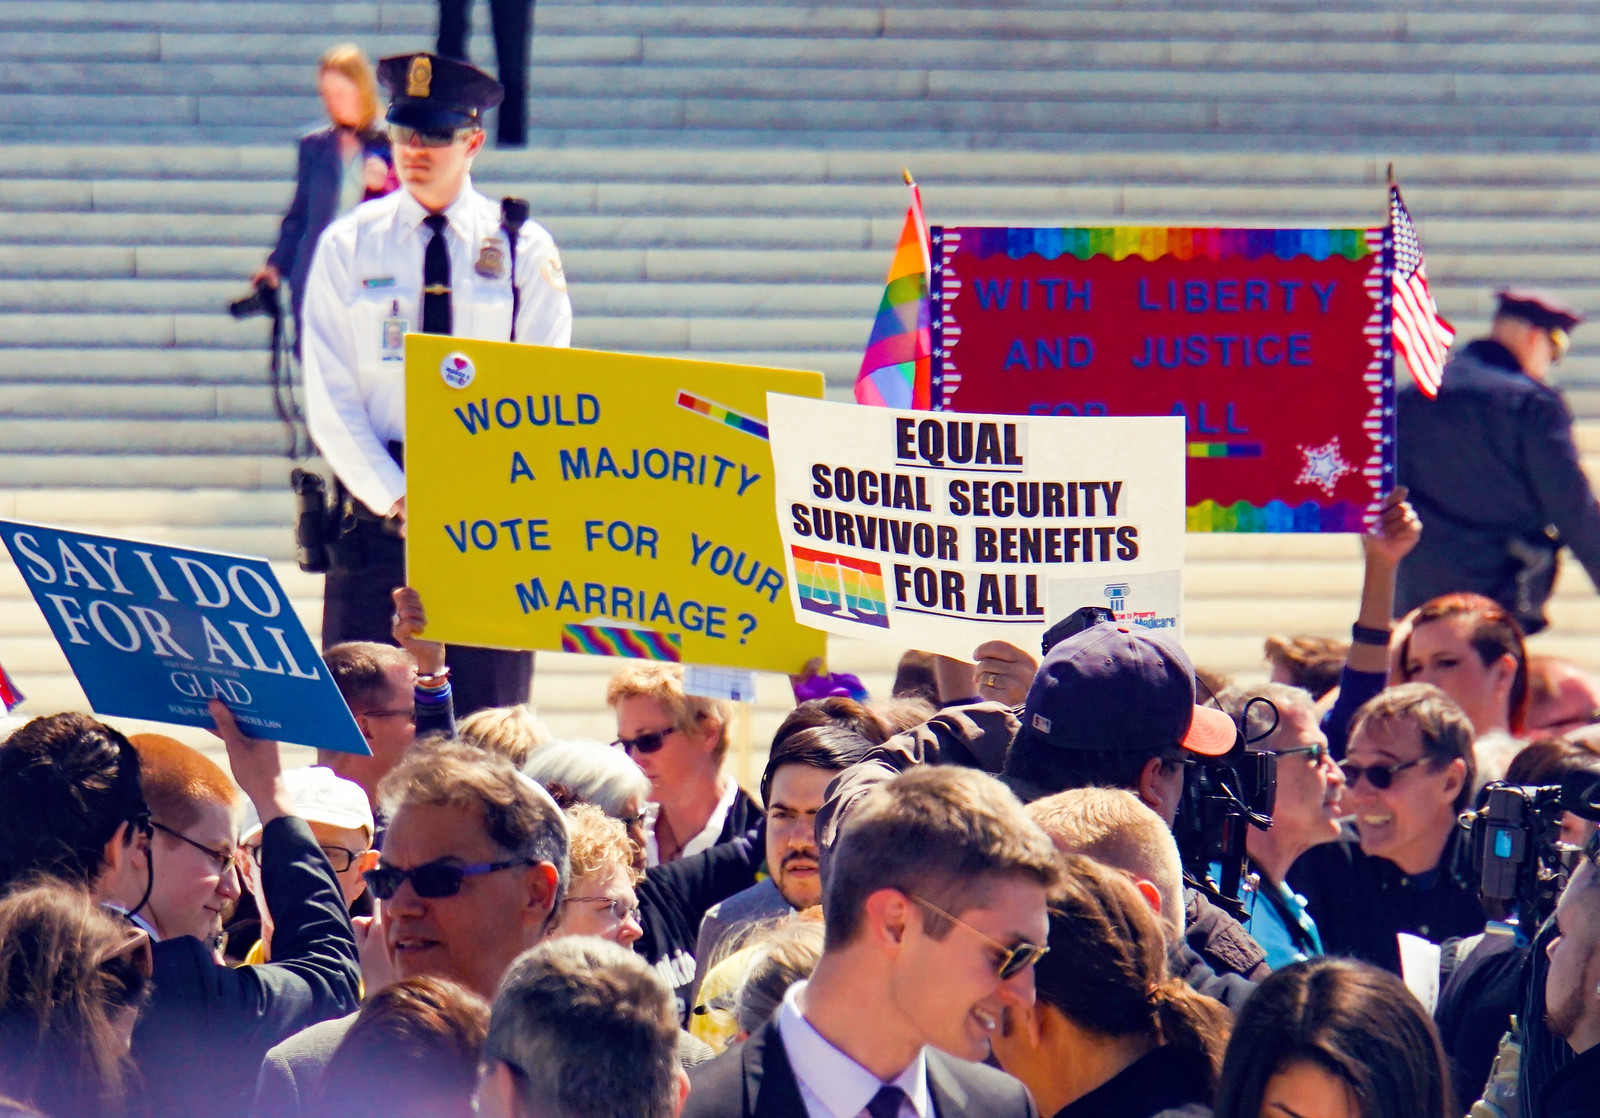 Photo: From this day in 2015 in front of SCOTUS: A majority wouldn't have voted for our marriage, we got it anyway